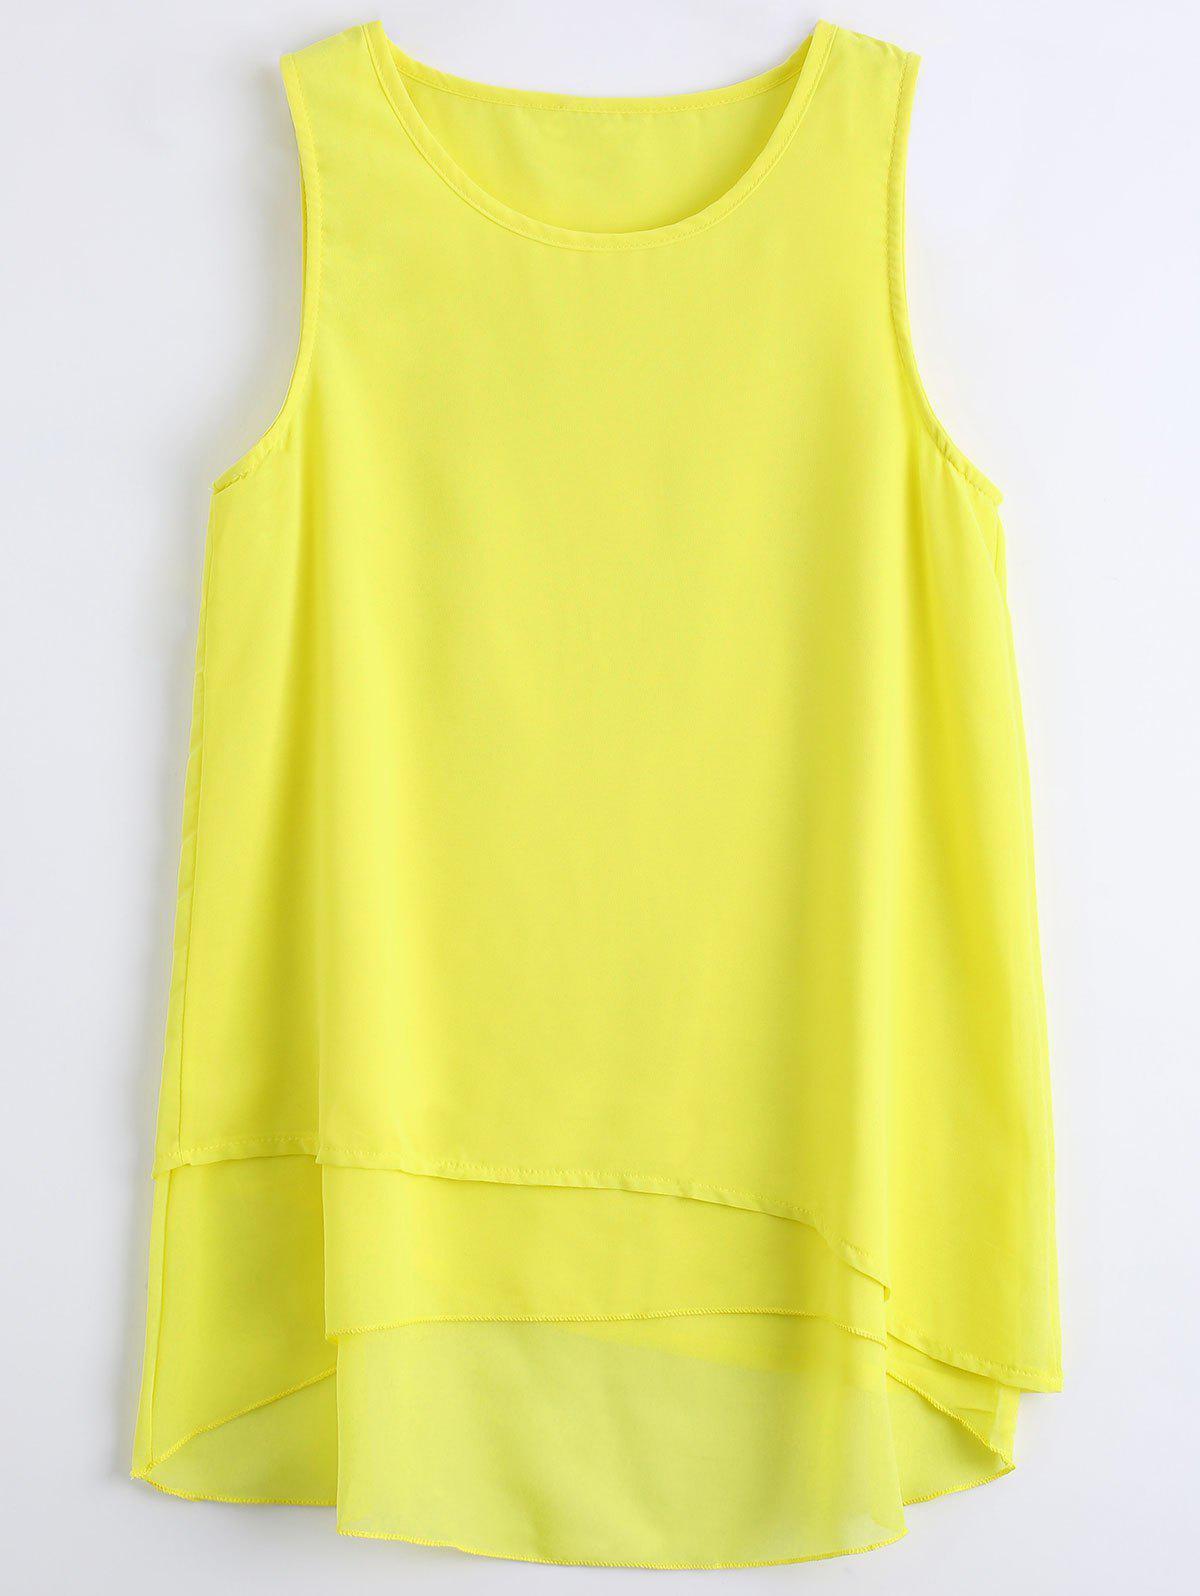 Sleeveless Asymmetric Chiffon TopWOMEN<br><br>Size: XL; Color: YELLOW; Material: Polyester; Fabric Type: Chiffon; Shirt Length: Long; Pattern Type: Solid; Style: Casual; Weight: 0.2200kg; Package Contents: 1 x Tank Top;